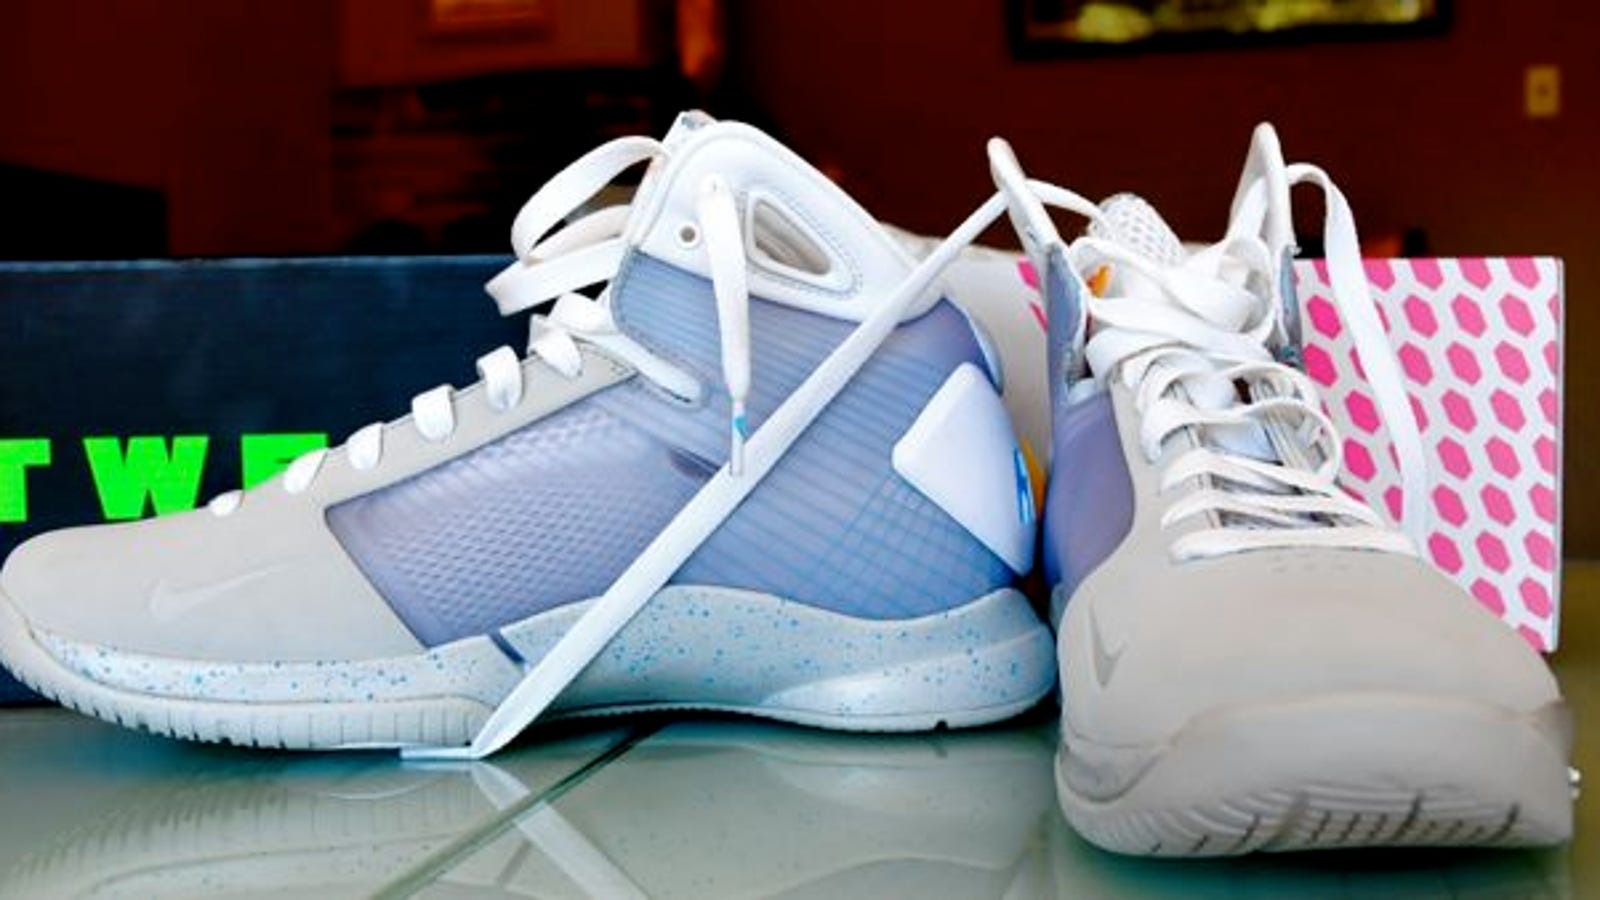 561676e86b4d Feet On  Nike s Hyperdunk 2015 Sneakers Bring Me Back to the Future